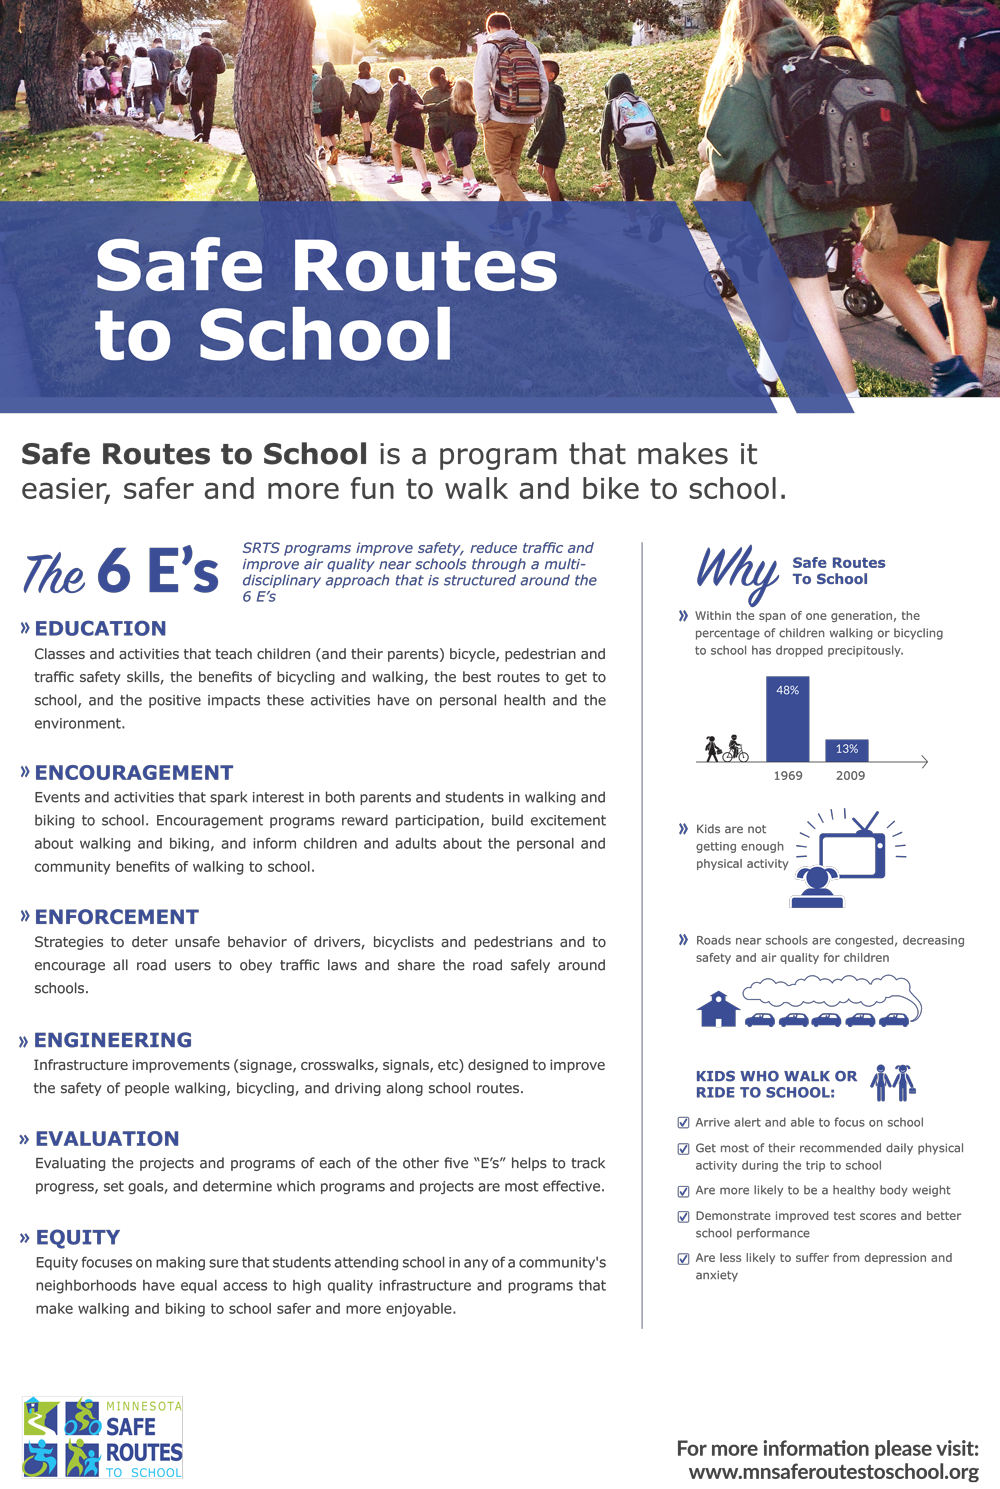 Overview of Safe Routes to School Poster Image